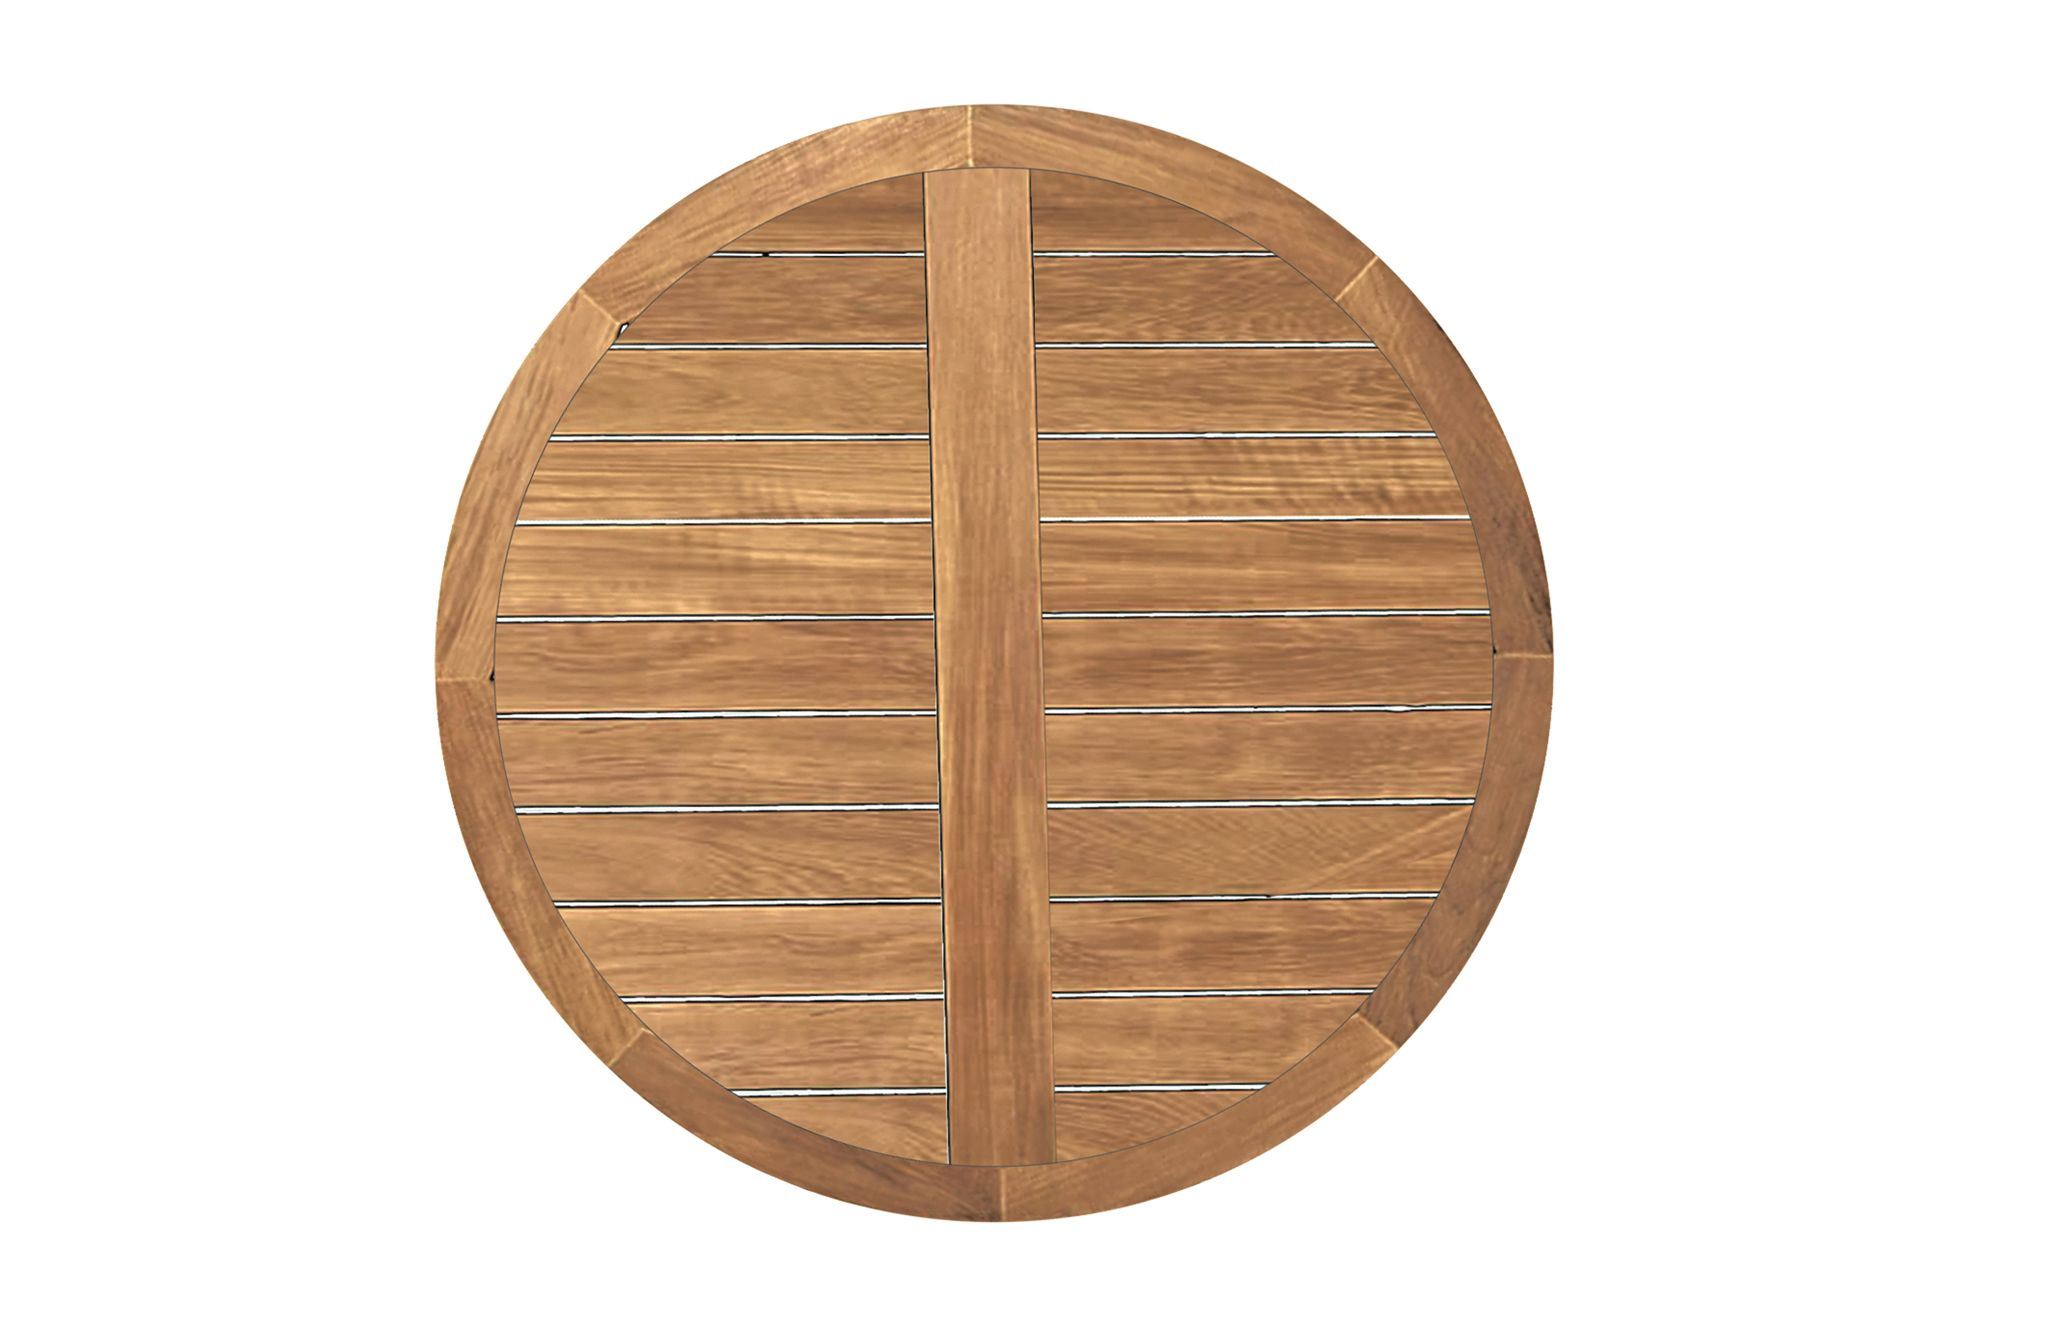 Club Teak 48 Round Teak Table Top Teak Table Solid Wood Table Table Top